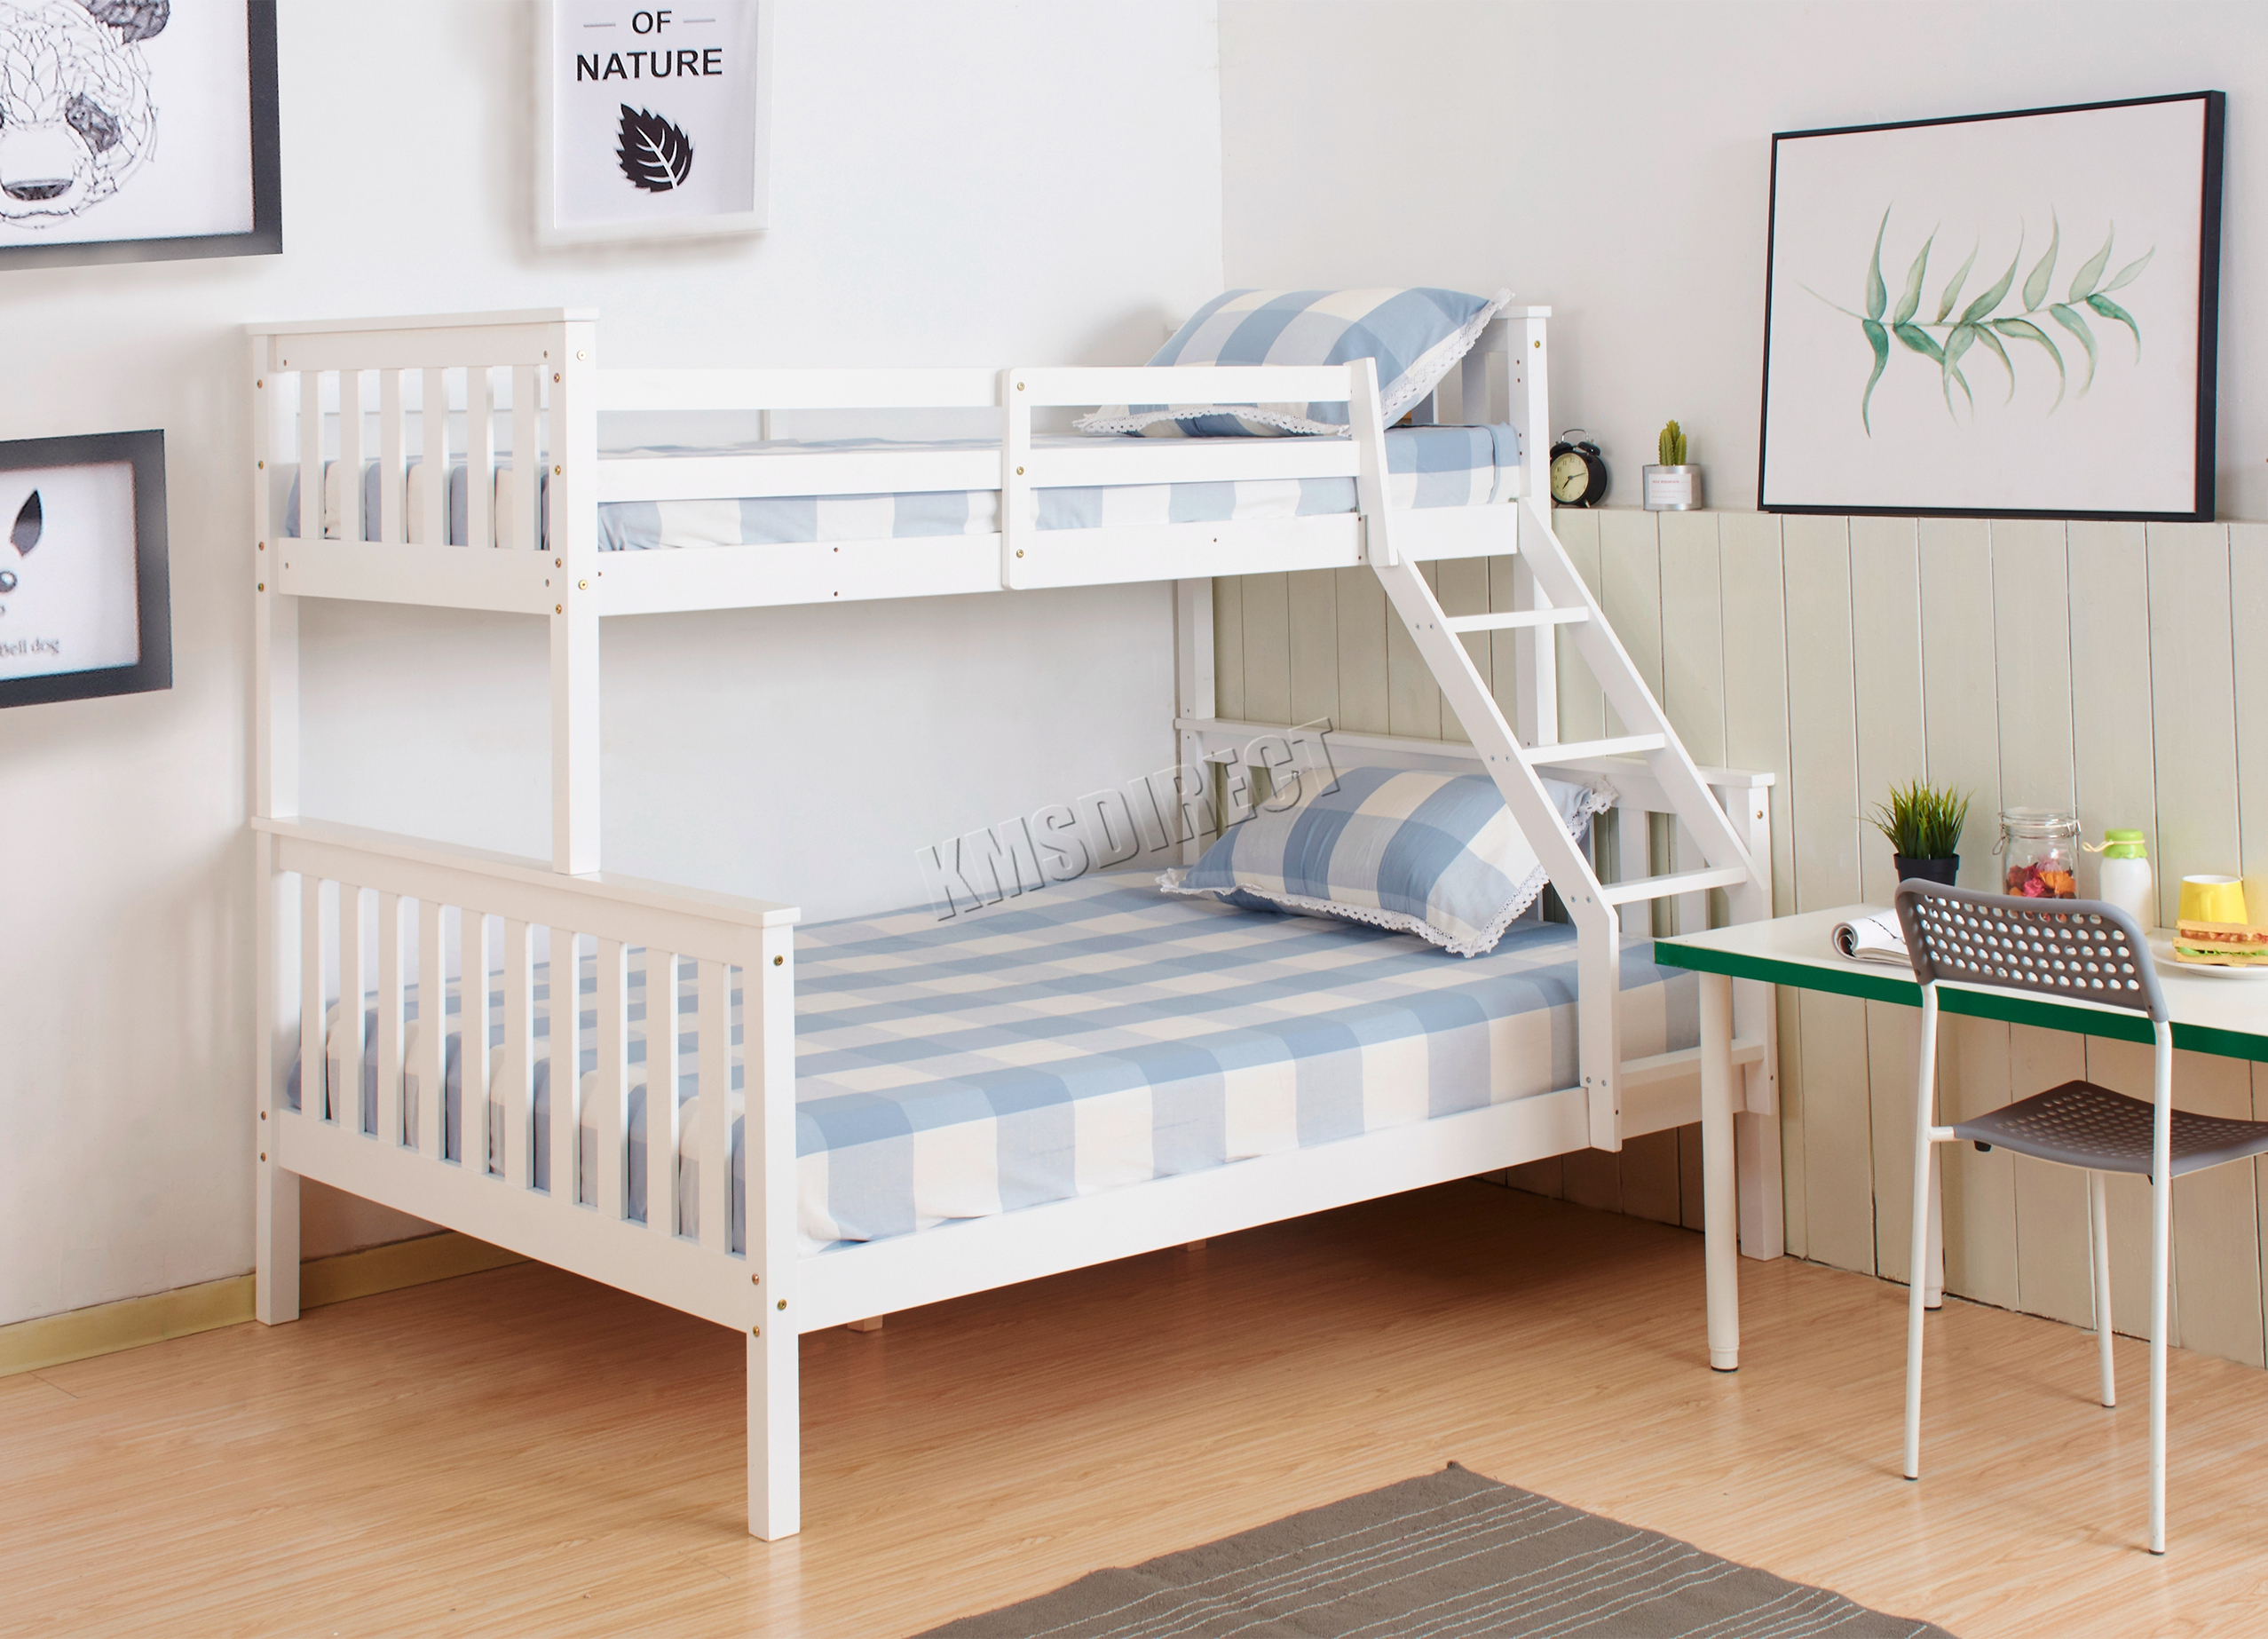 foxhunter bunk bed wooden frame children kids triple 11925 | bunkbed wood triple nm fhbbw02 white kmswm0001